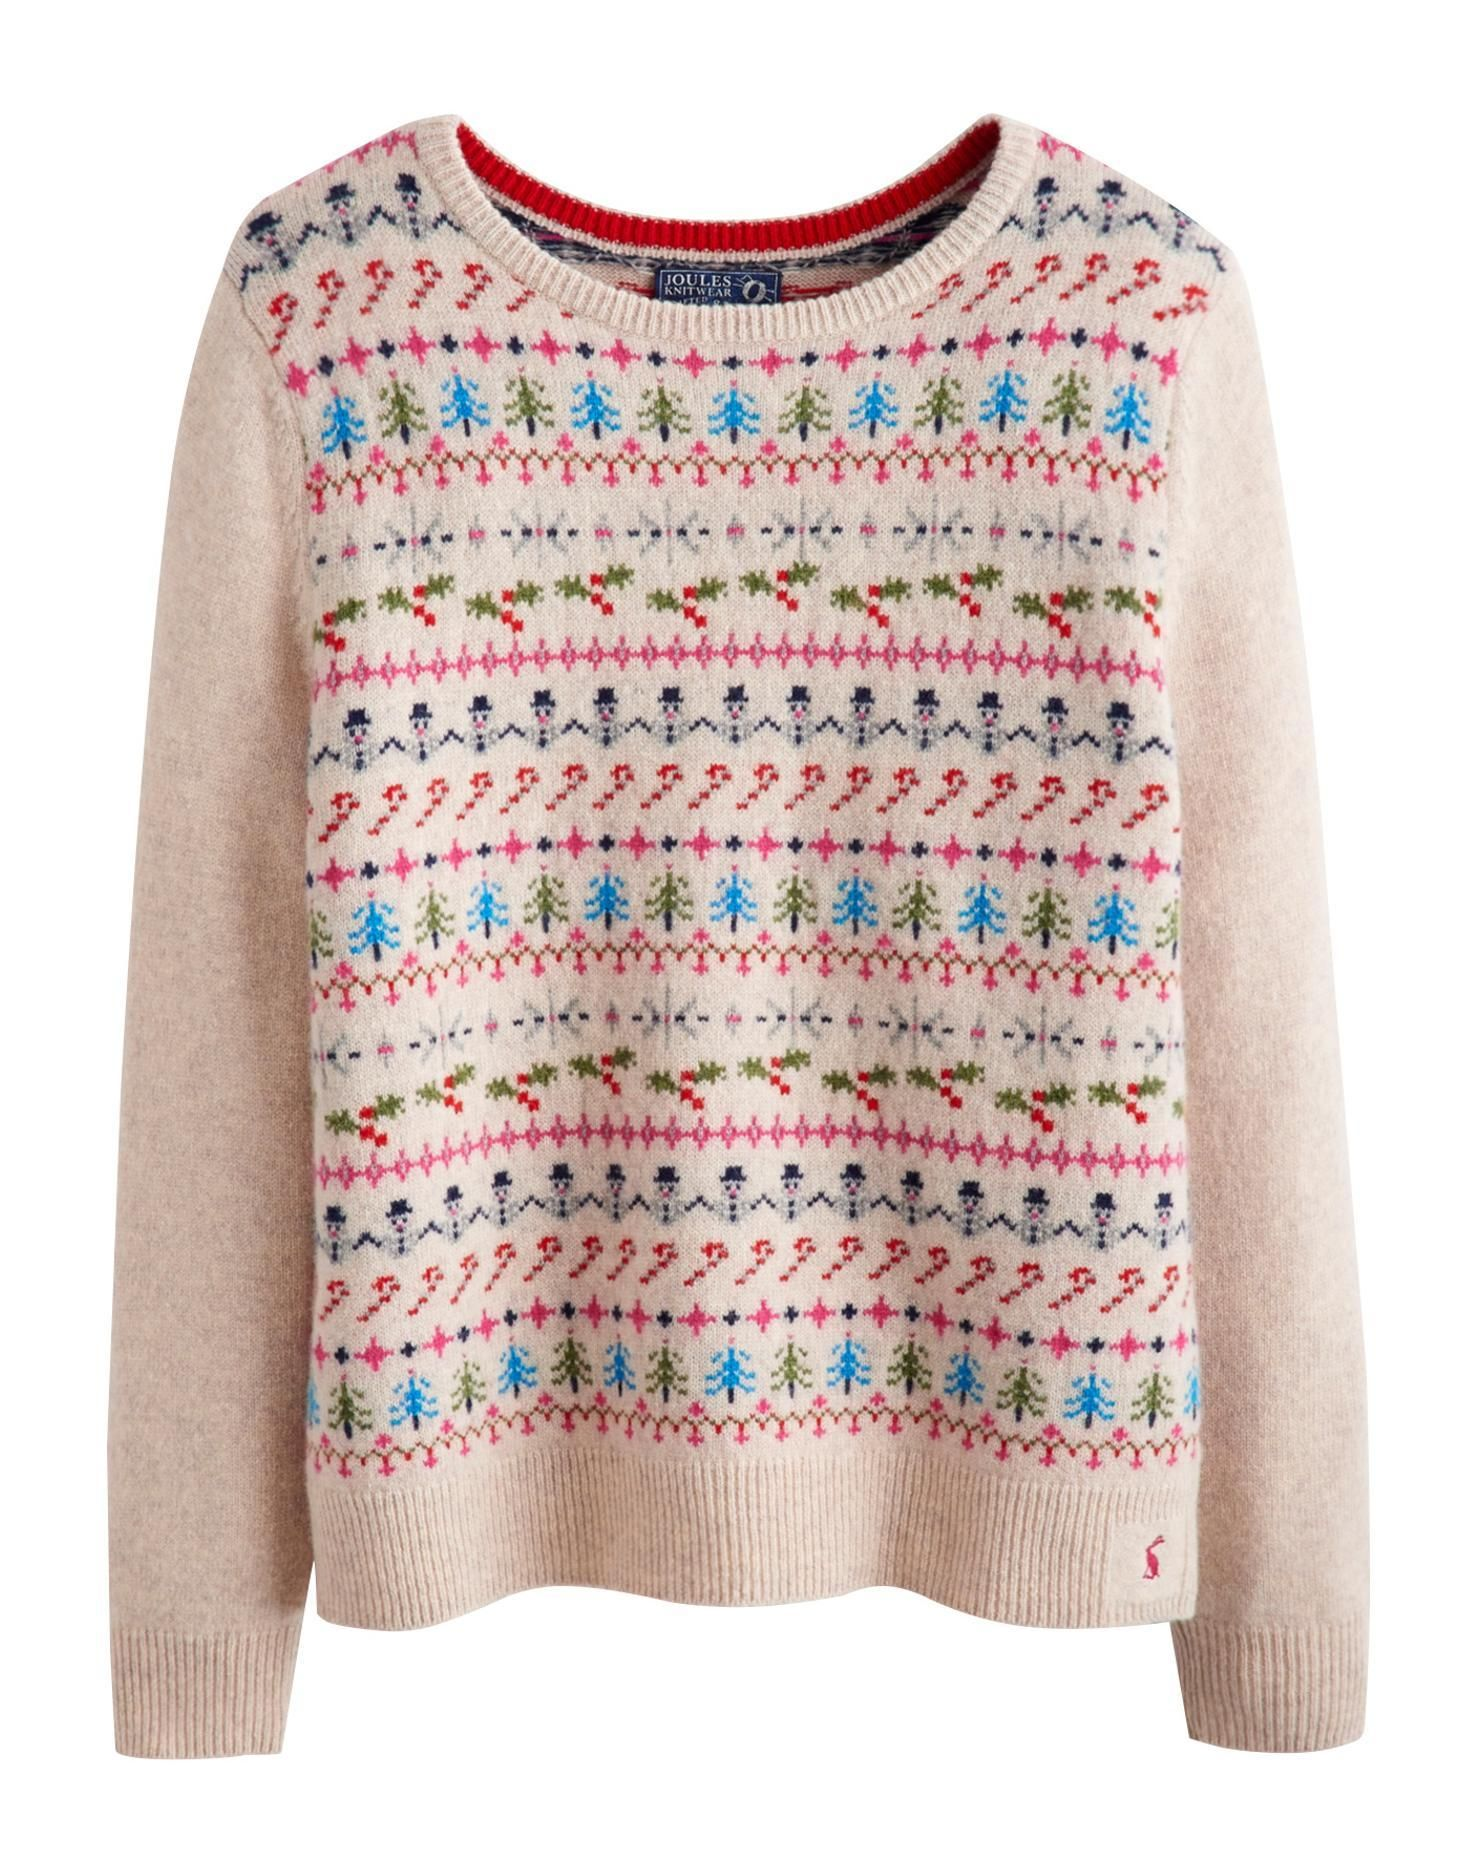 Joules Womens Christmas Intarsia Jumper, Light Grey. If you're looking for a